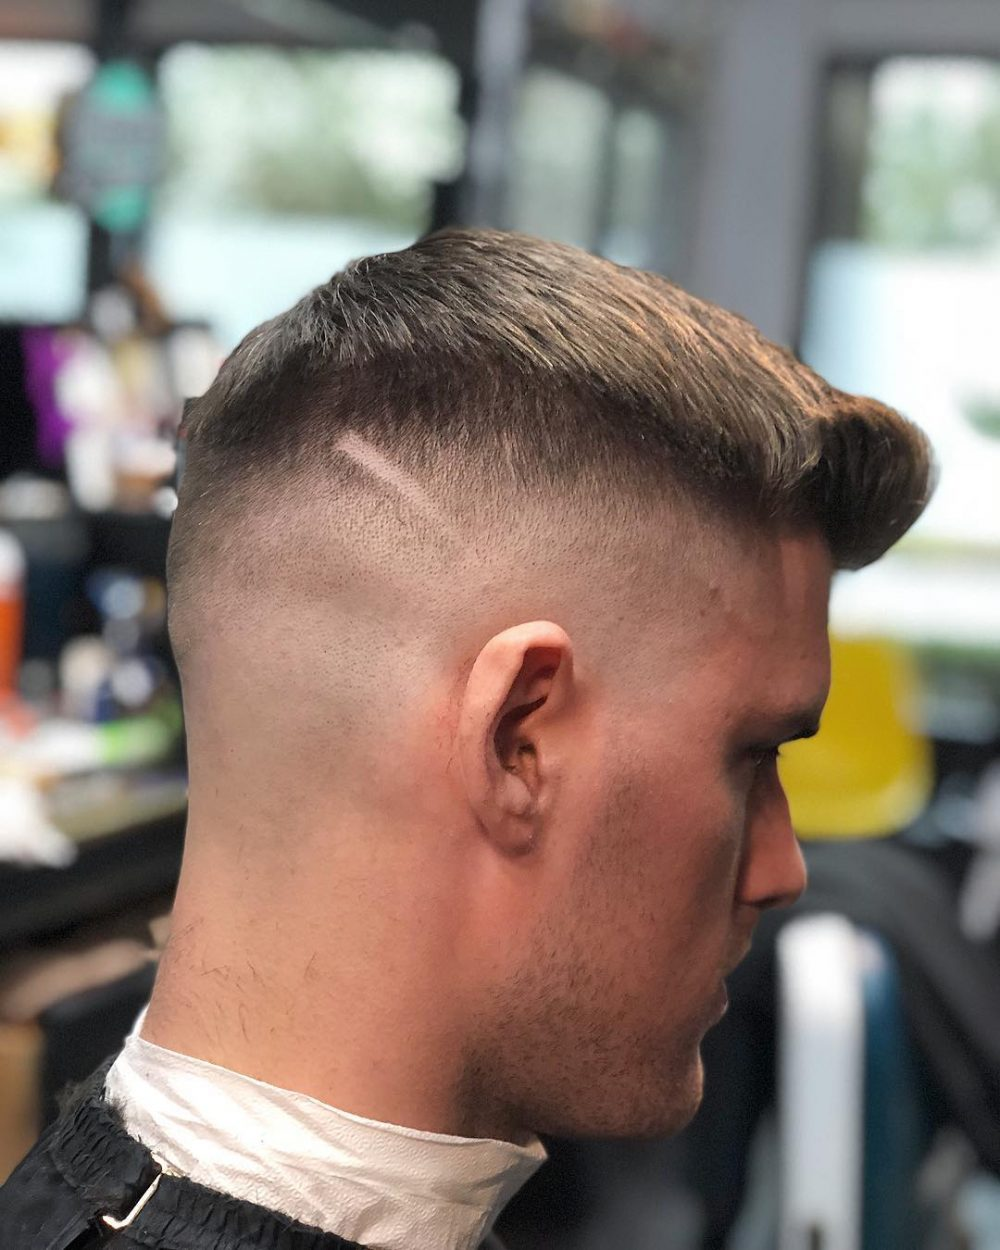 15 Best Taper Fade Haircuts for Men in 2018: Bald, High ...